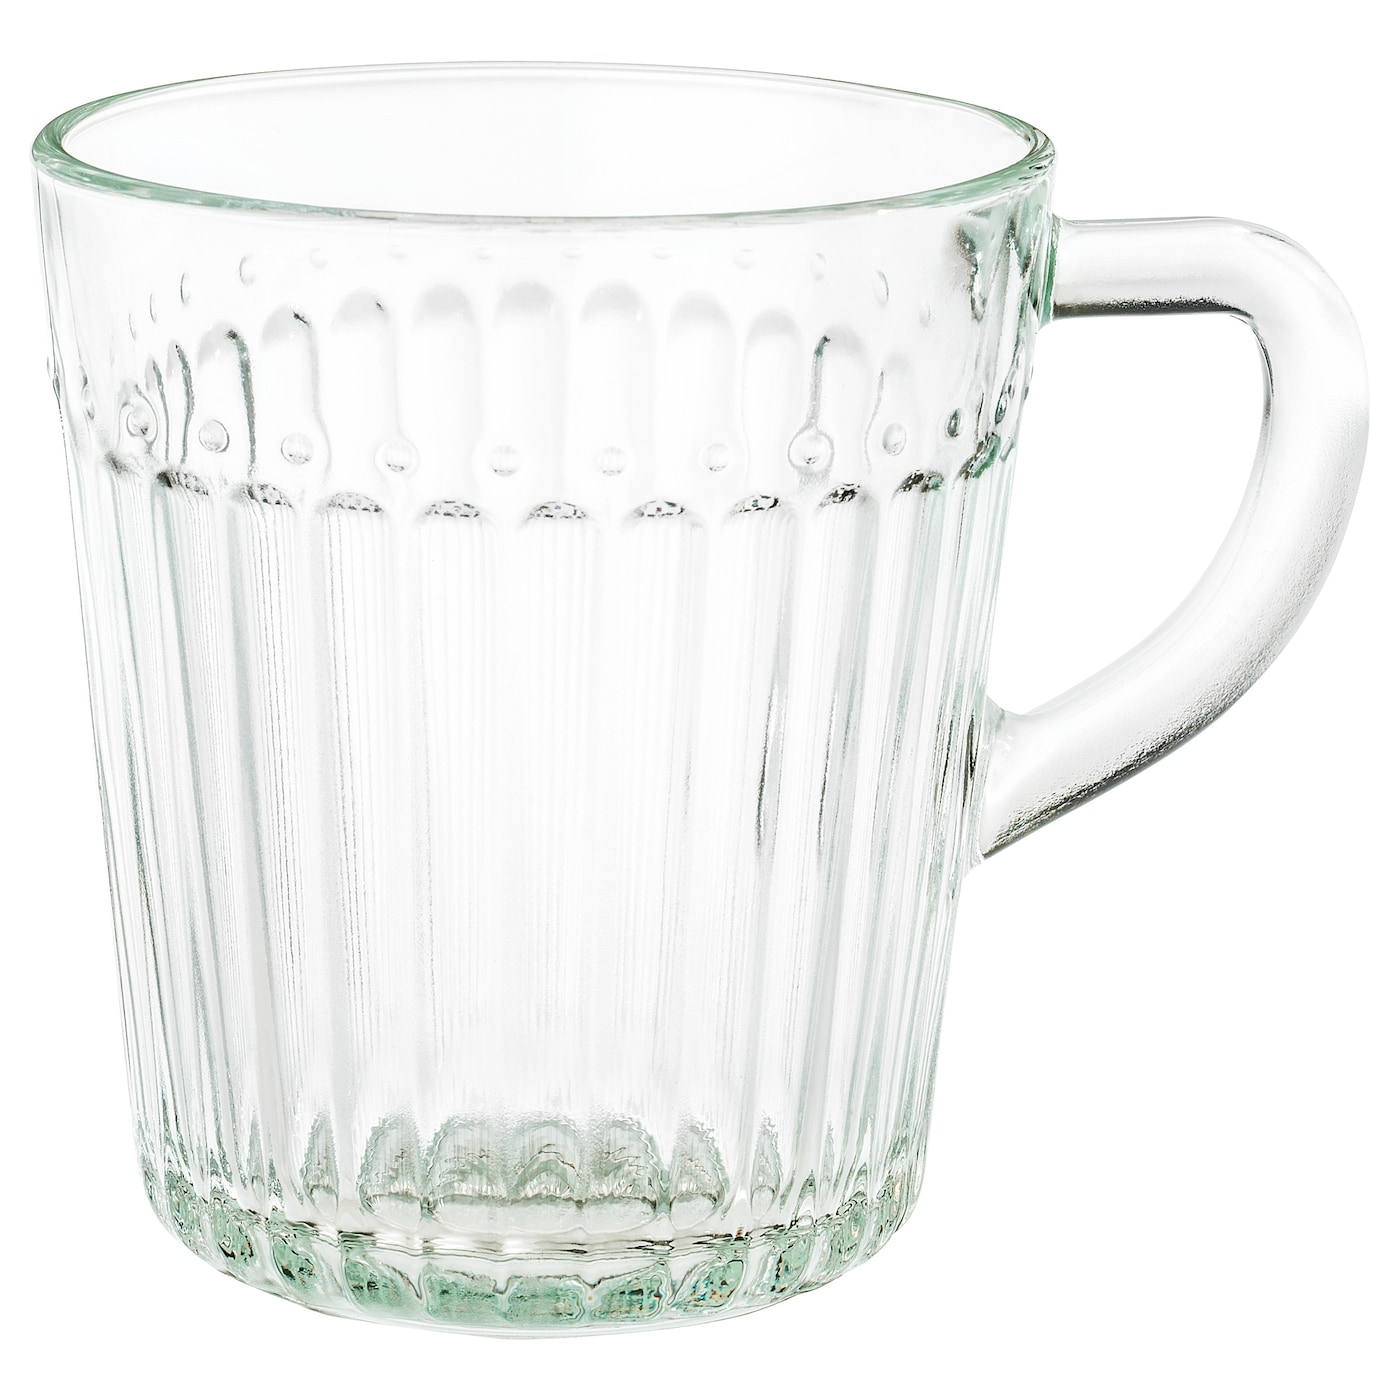 IKEA DRÖMBILD mug Made of tempered glass, which makes the mug durable and extra resistant to impact.